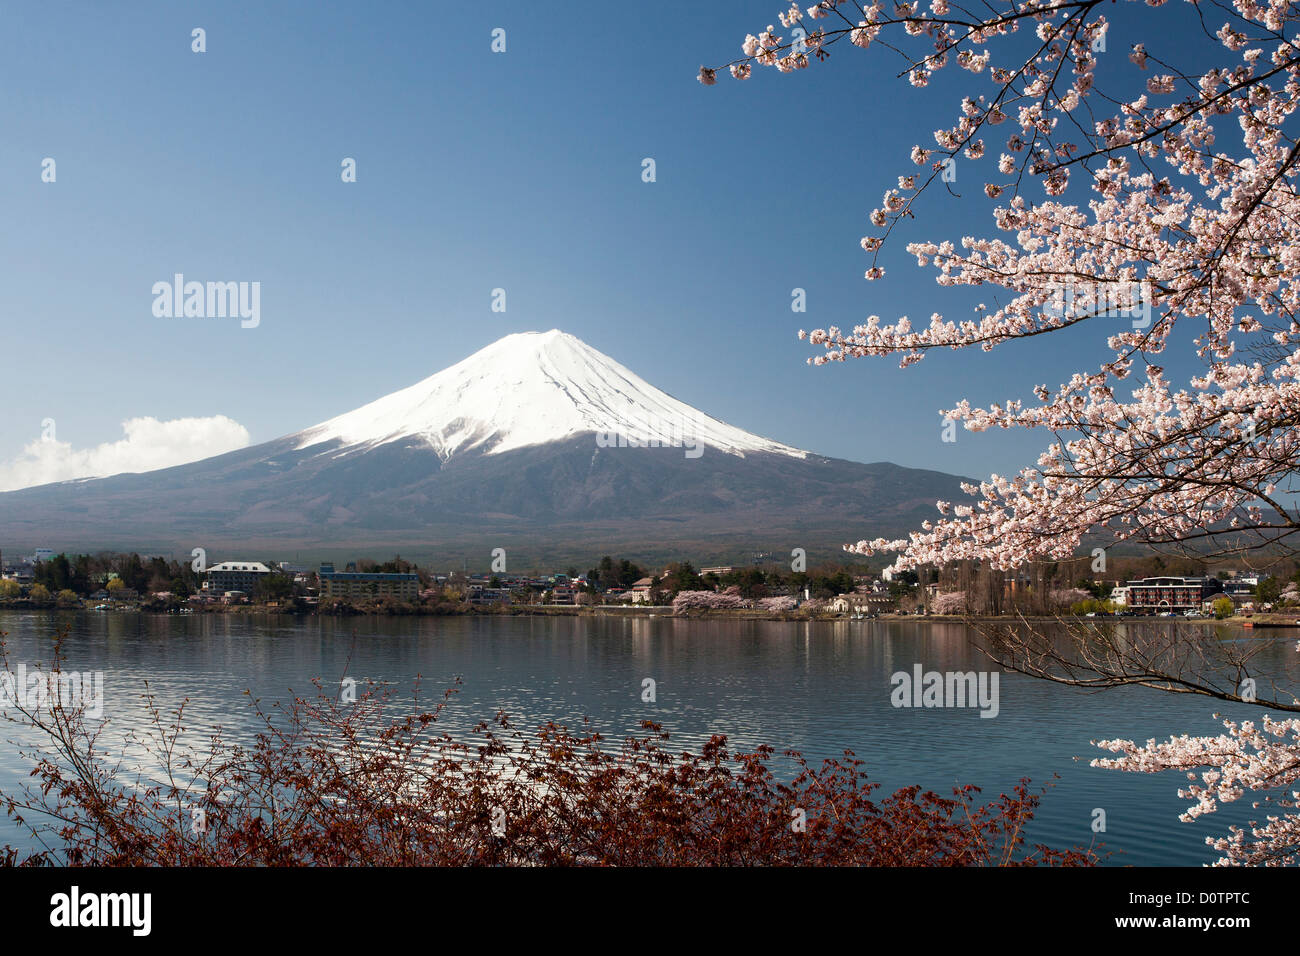 Japan Asia Holiday Travel Cherry Blossoms Yamaguchi Lake Fuji Mount Fujiyama Landscape Mountain Snow Spring V